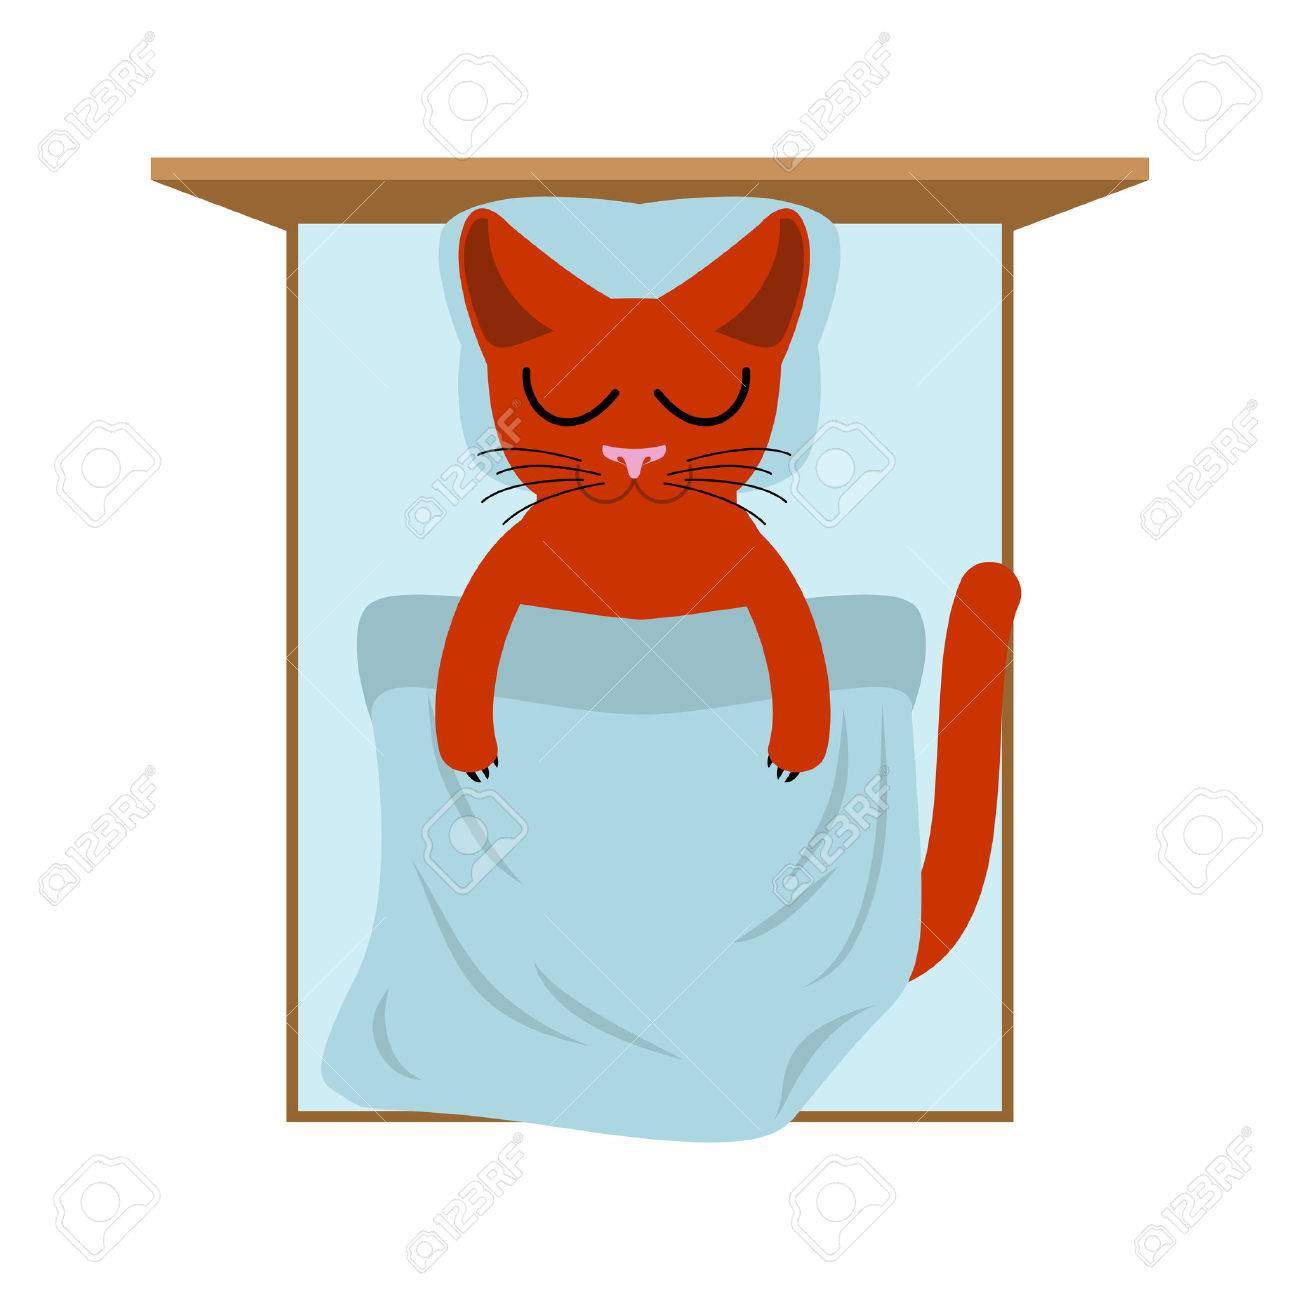 Cat Sleeps In Bed. Pillow And Blanket. Sleeping Kitten Royalty ... for Pillow And Blanket Clipart  156eri